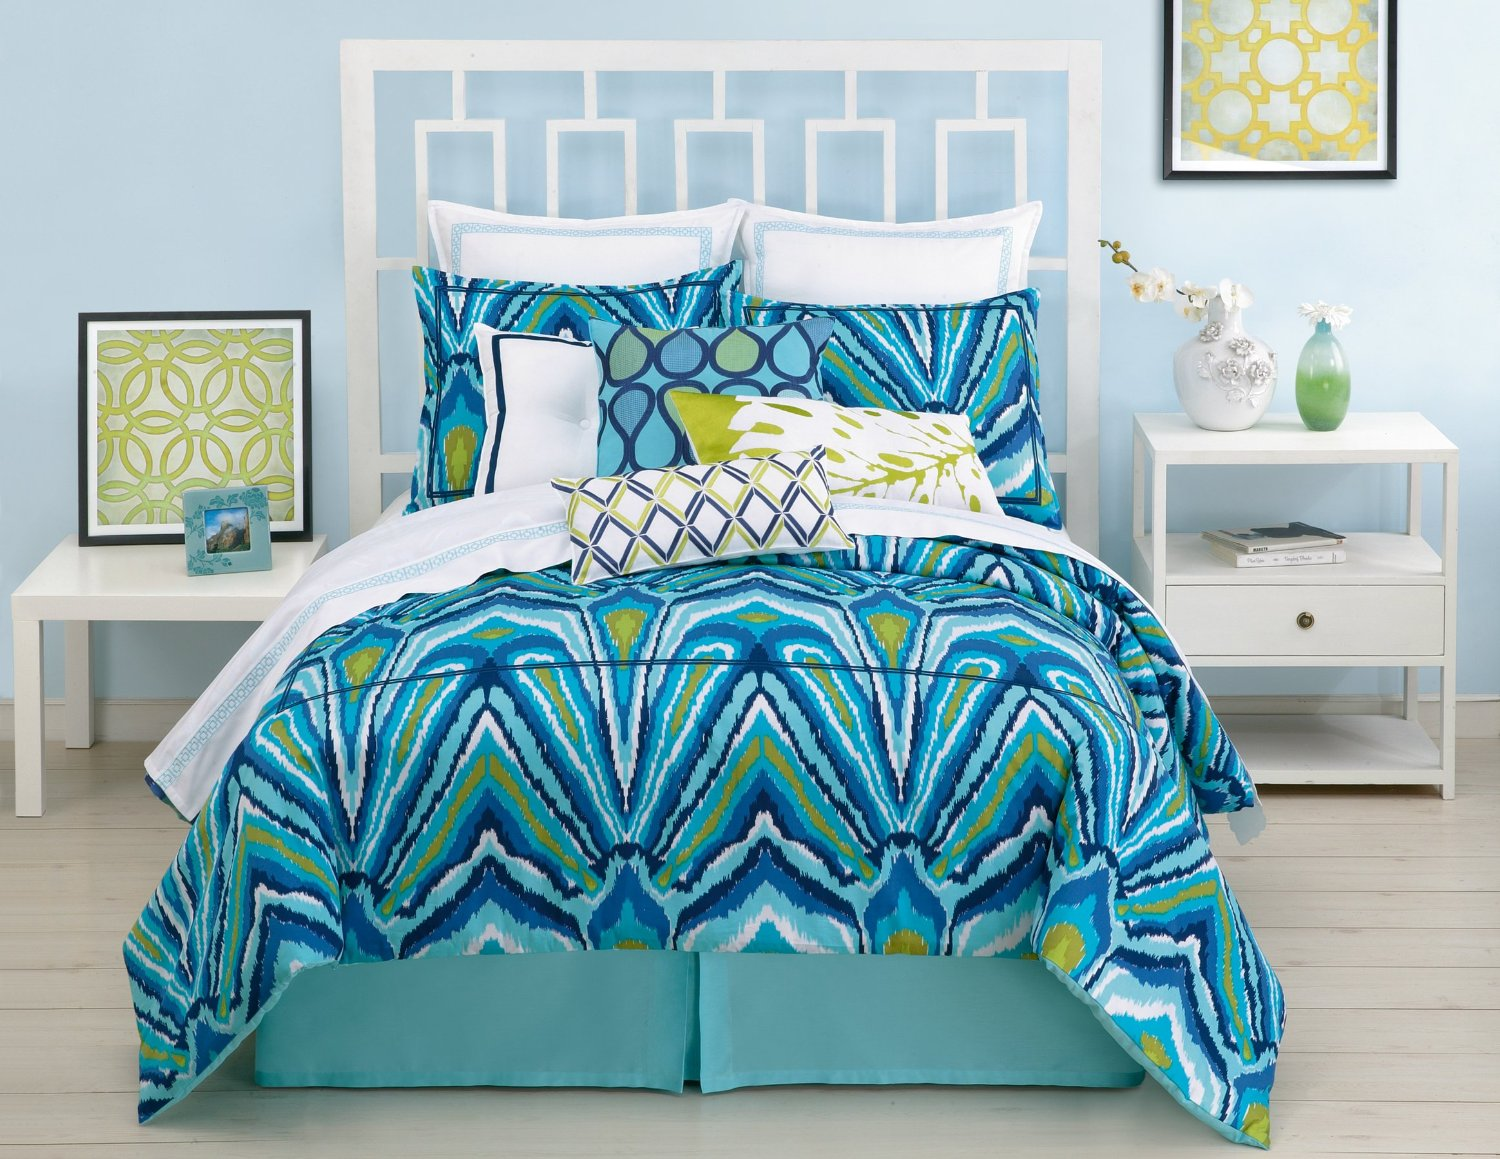 Peacock Comforter Set: Peacock Themed & Peacock Colored Comforter And Bedding Sets